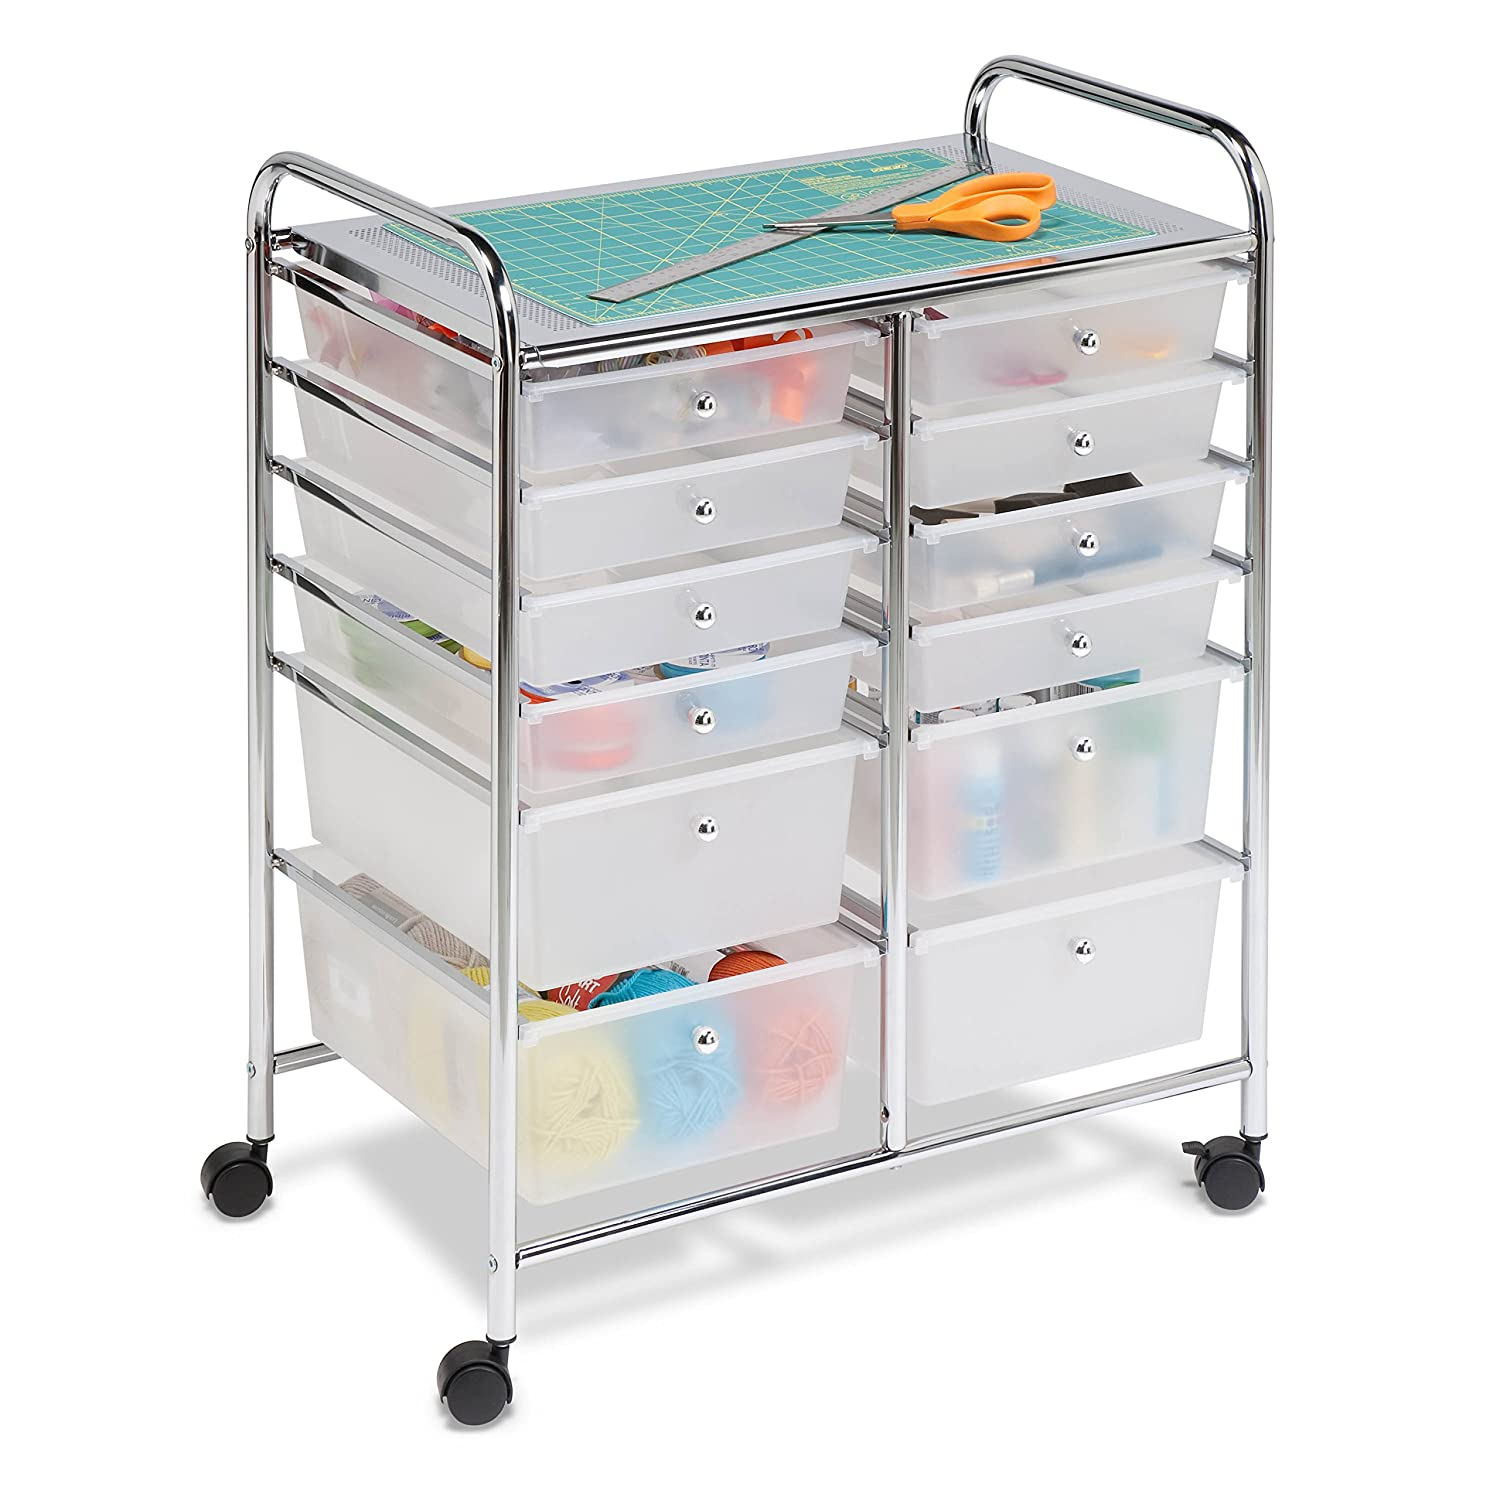 Ordinaire Amazon.com: Honey Can Do Rolling Storage Cart And Organizer With 12 Plastic  Drawers: Home U0026 Kitchen